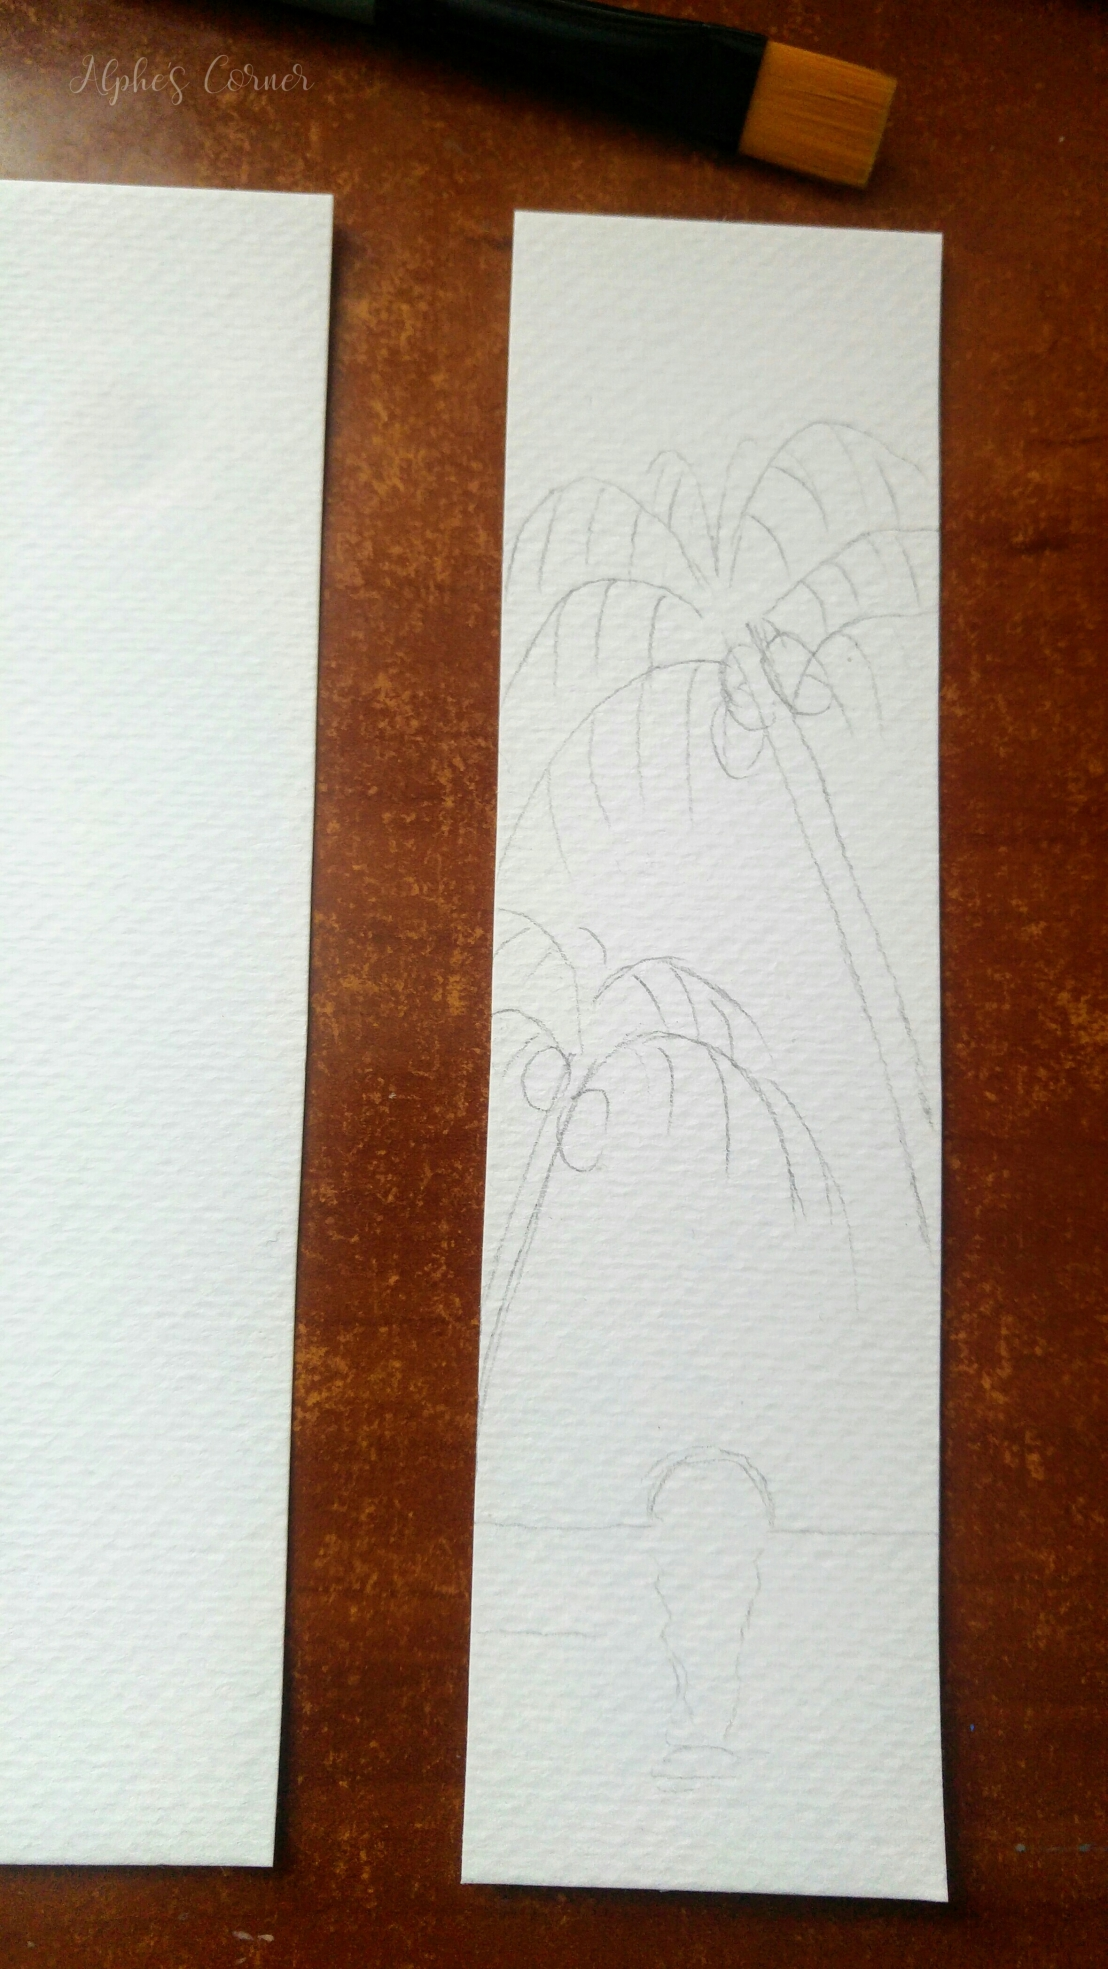 Sketching the sunset and palm trees on a bookmark